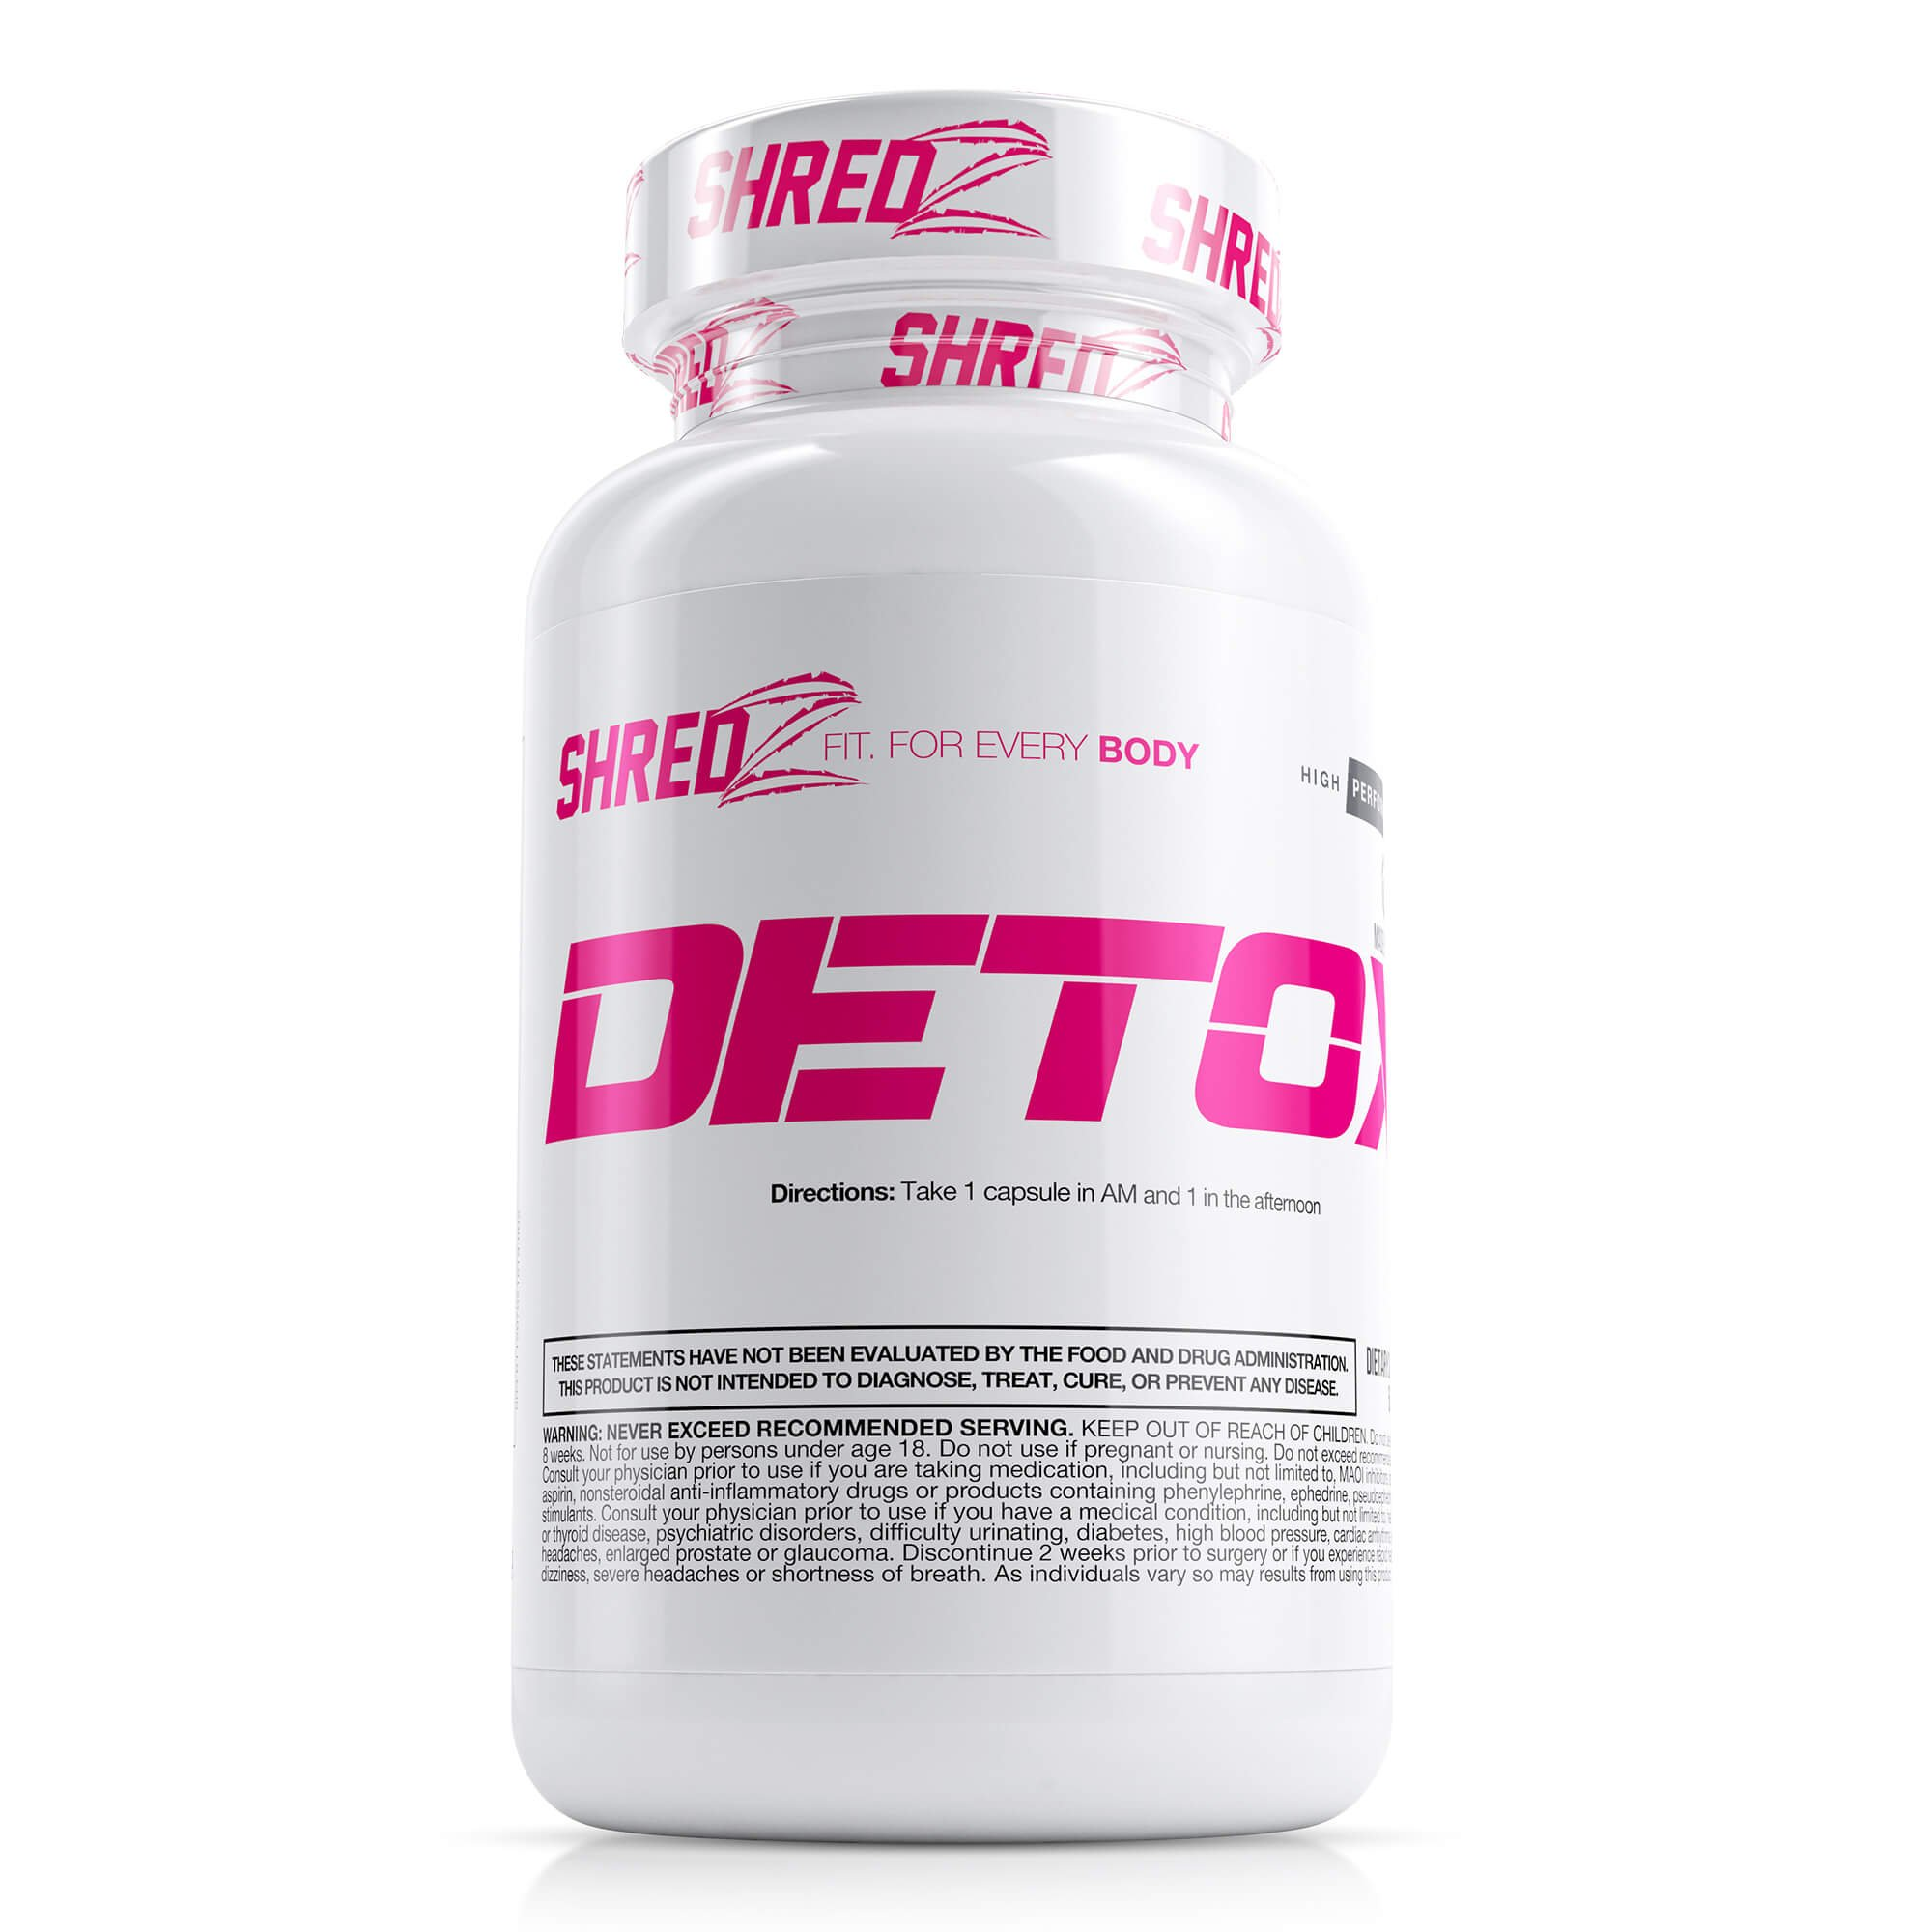 SHREDZ Detox Supplement Pills Made for Women, Essential Vitamins, Promotes Weight Loss, Cleanses System (1 Month Supply)